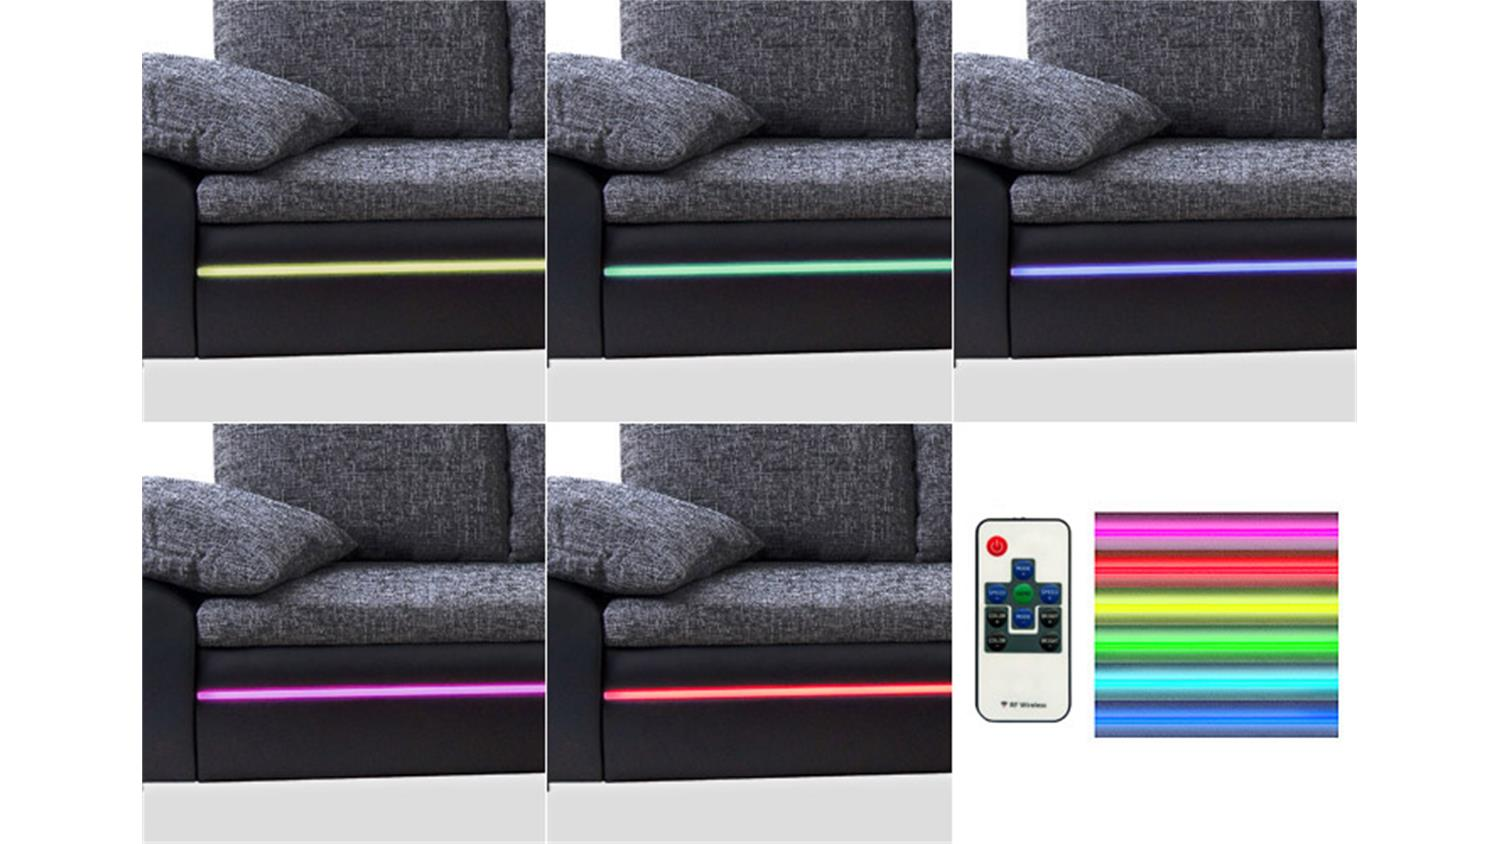 big sofa dubai in wei t rkis inklusive rgb led beleuchtung. Black Bedroom Furniture Sets. Home Design Ideas